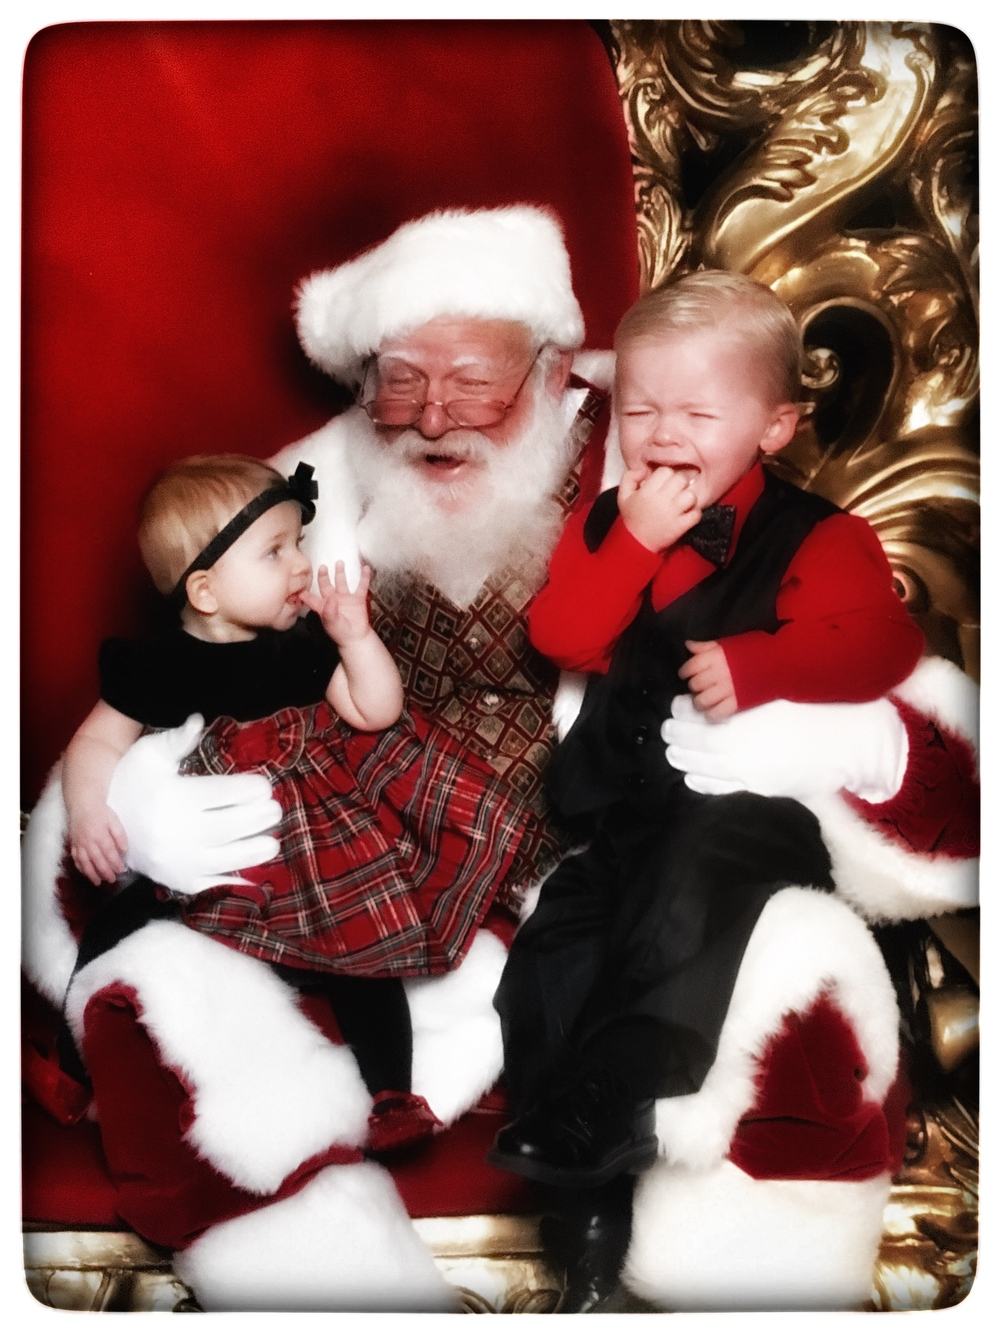 Santa picture at the mall in Sierra Vista, AZ